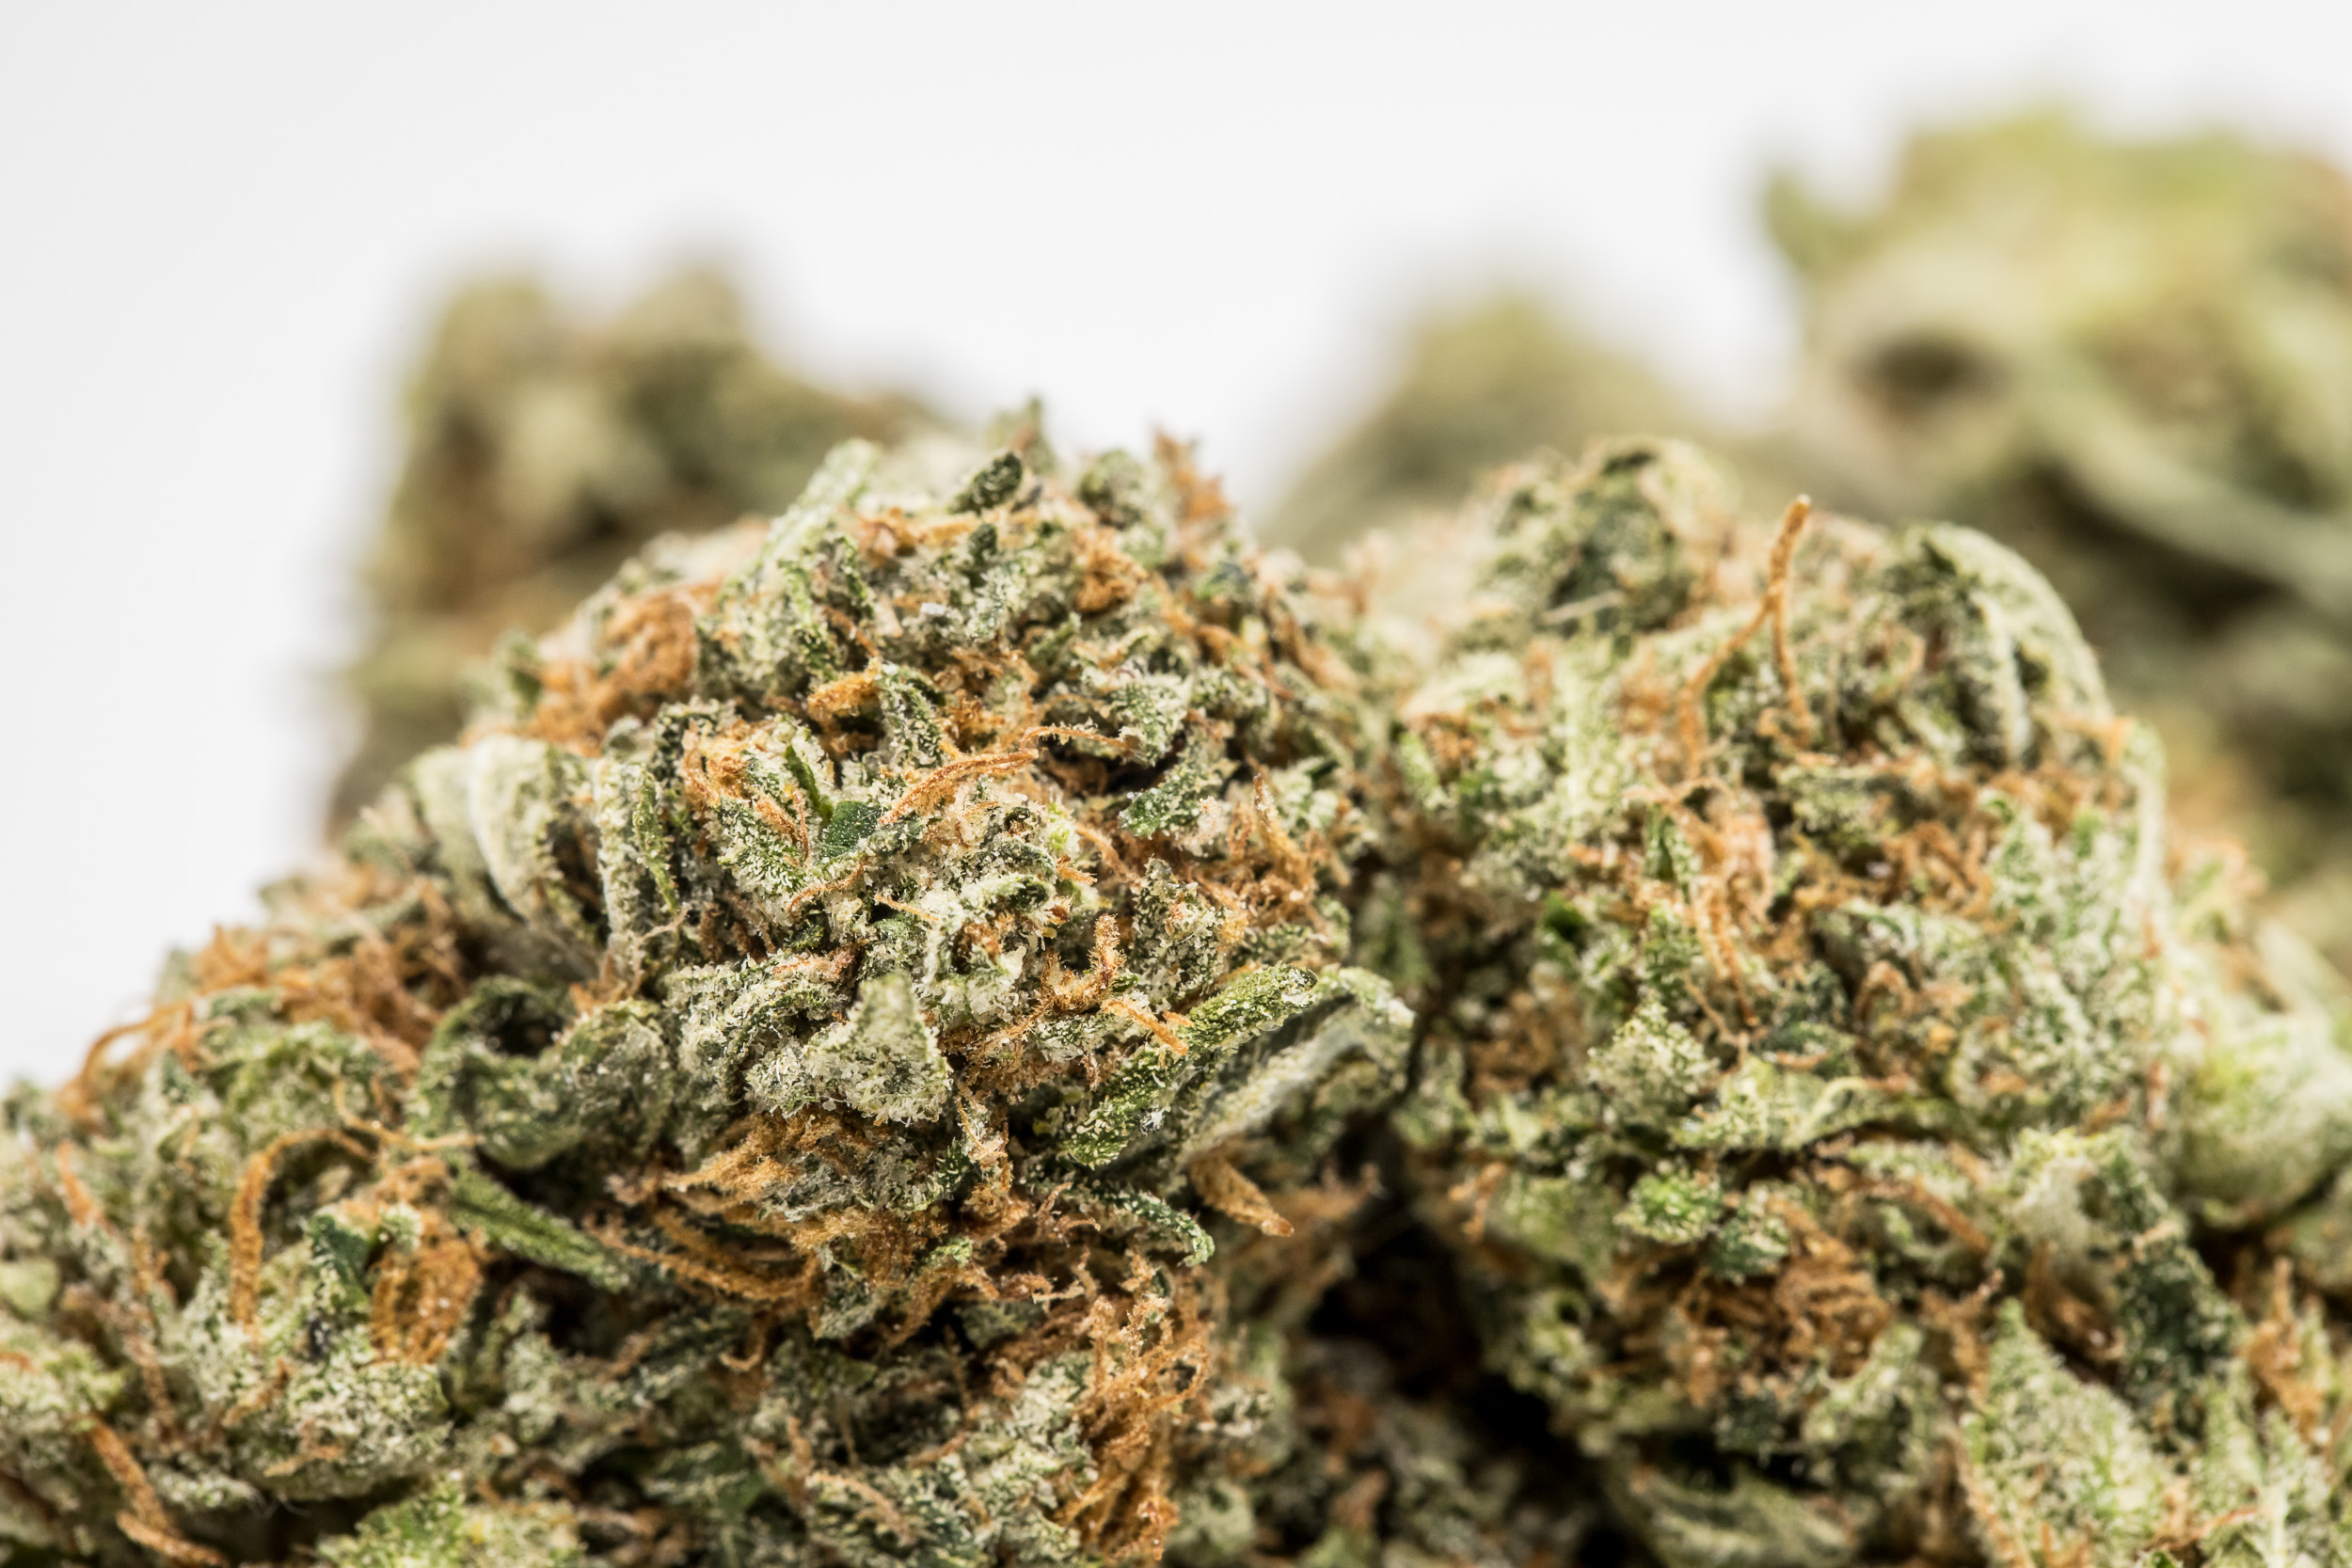 The Hulk We tested the best strains for chronic back pain